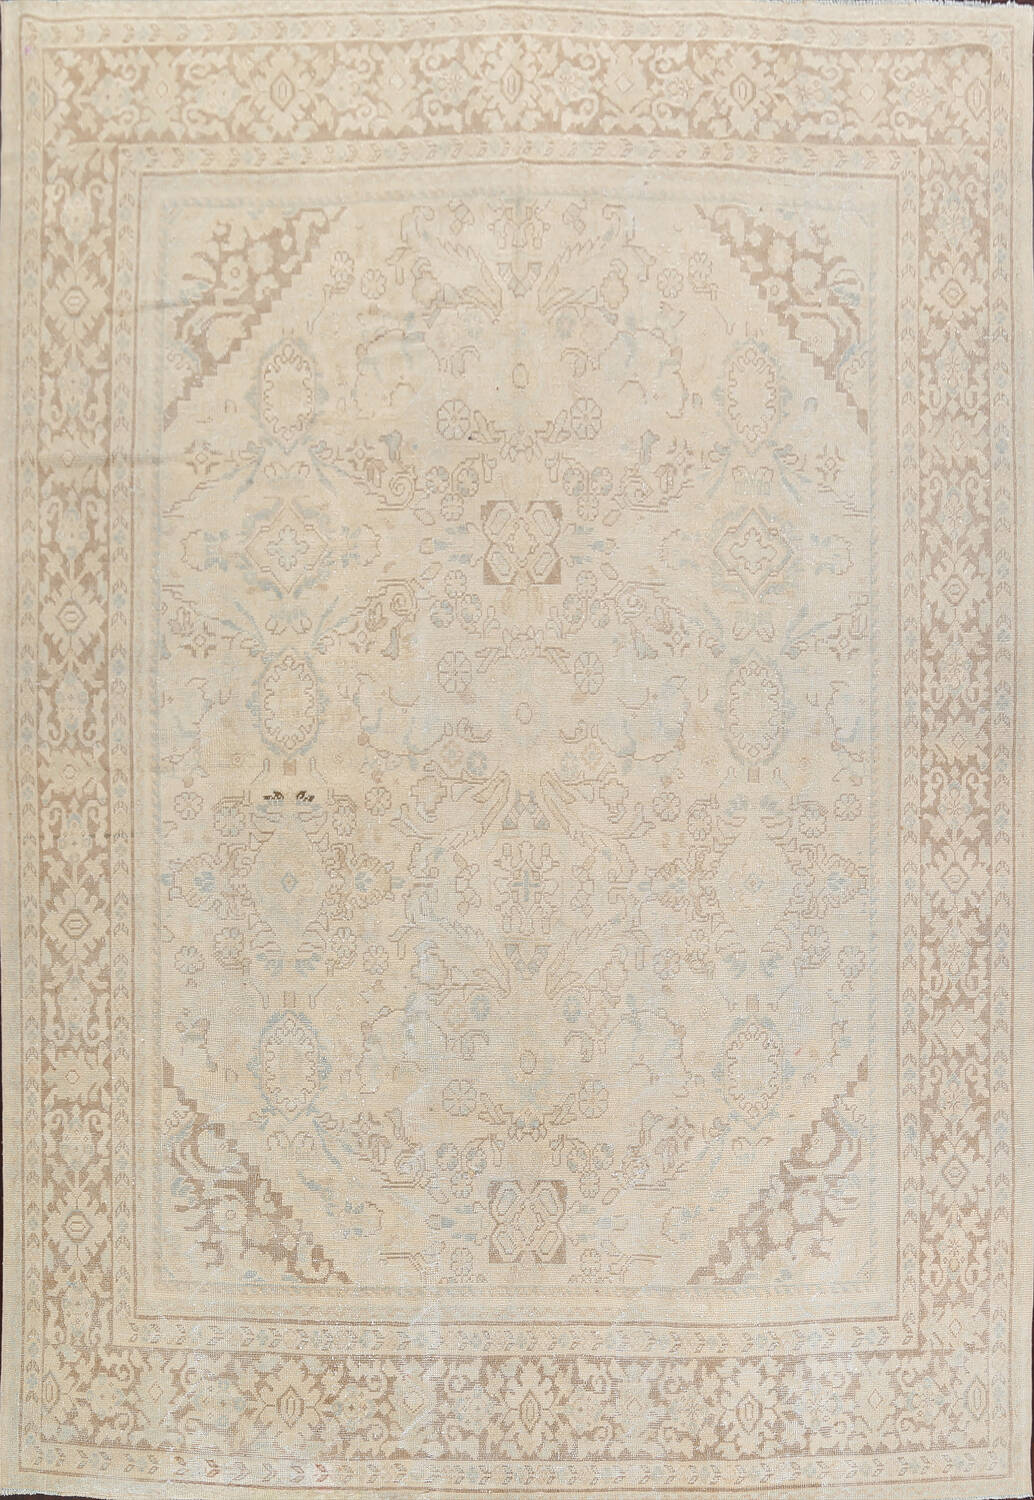 Antique Floral Mahal Persian Area Rug 9x12 image 1